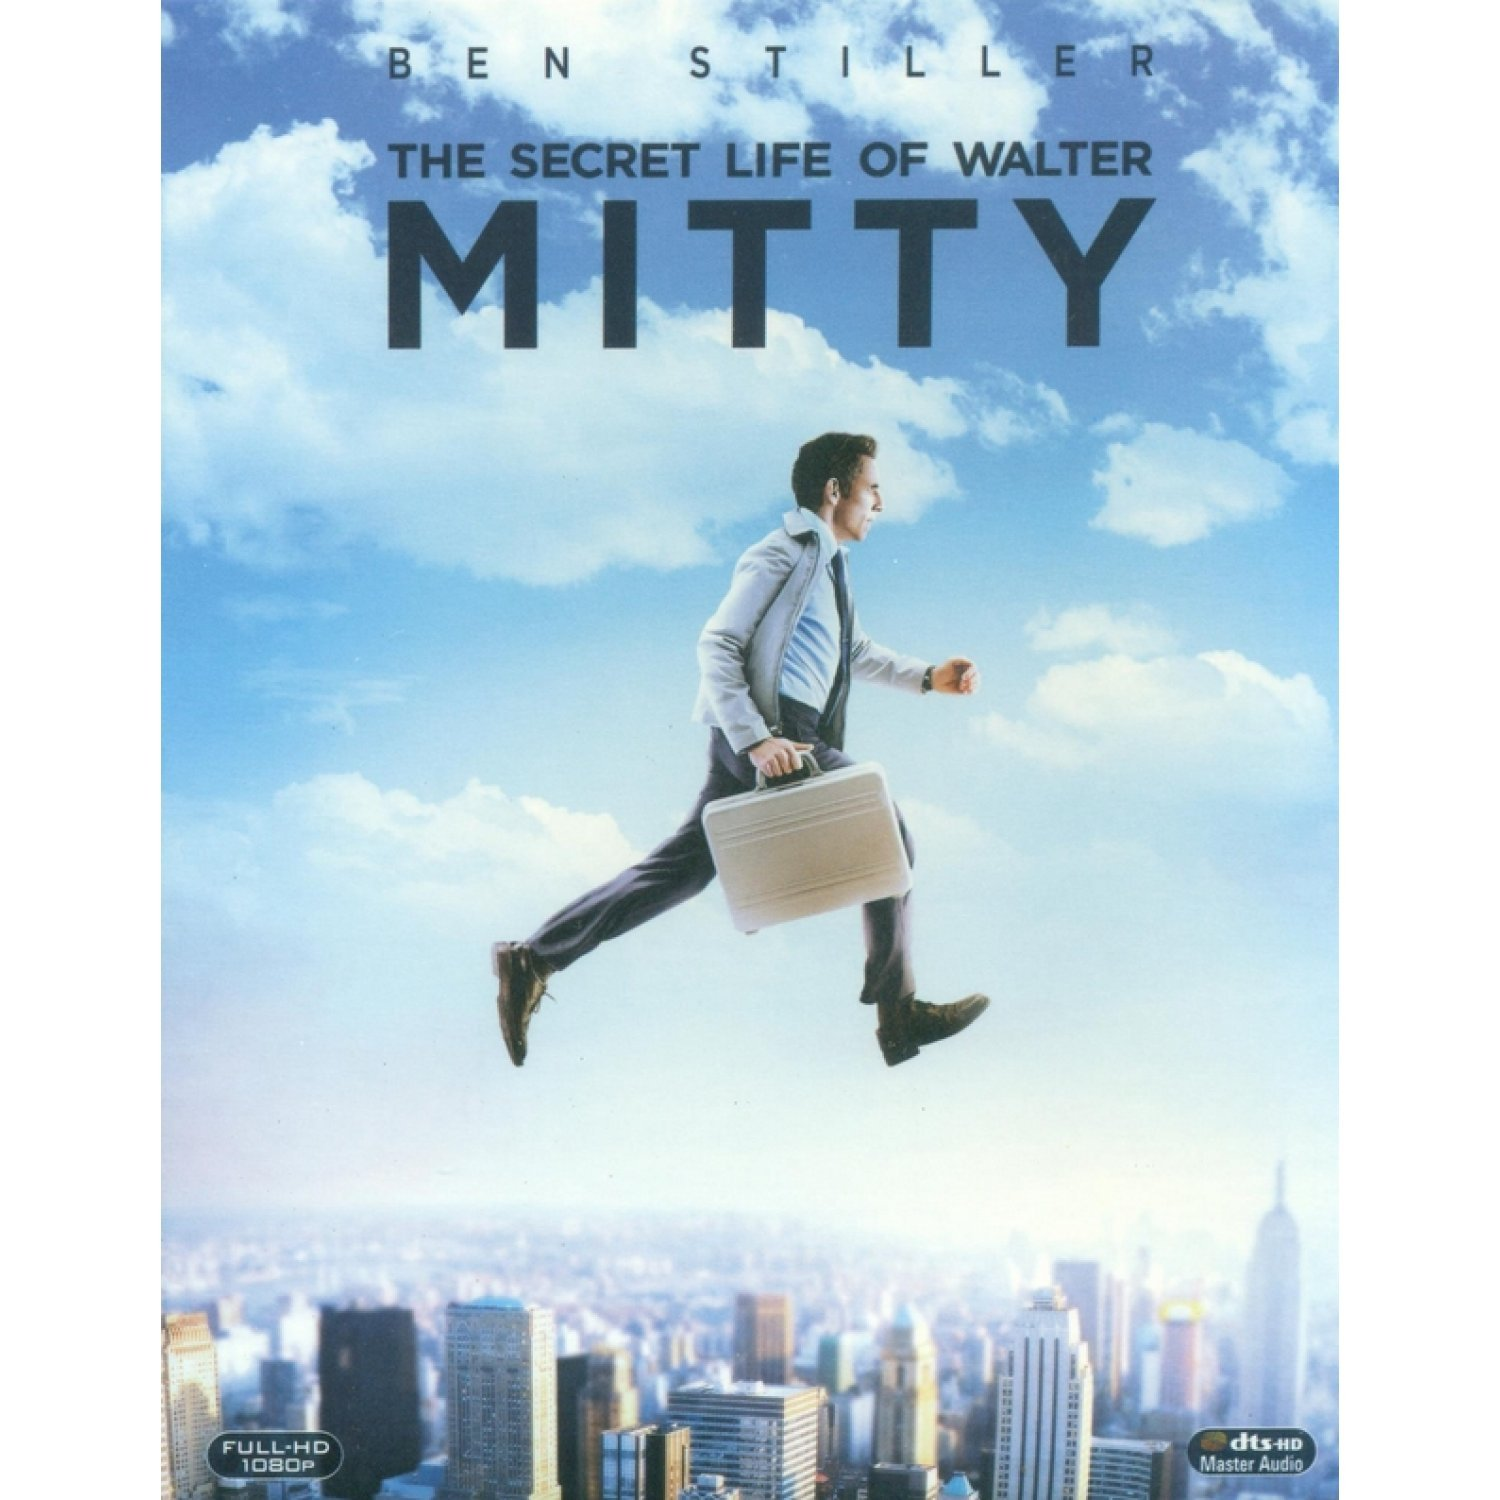 compare and contrast the secret life of walter mitty 1 characterize walter mitty using the concrete details and elaboration method 2 something from life would always spark mitty's daydreams, what caused at least three of these give a brief description of the dream and what caused the reality 3 describe mrs mitty use the same form that you did on walter.